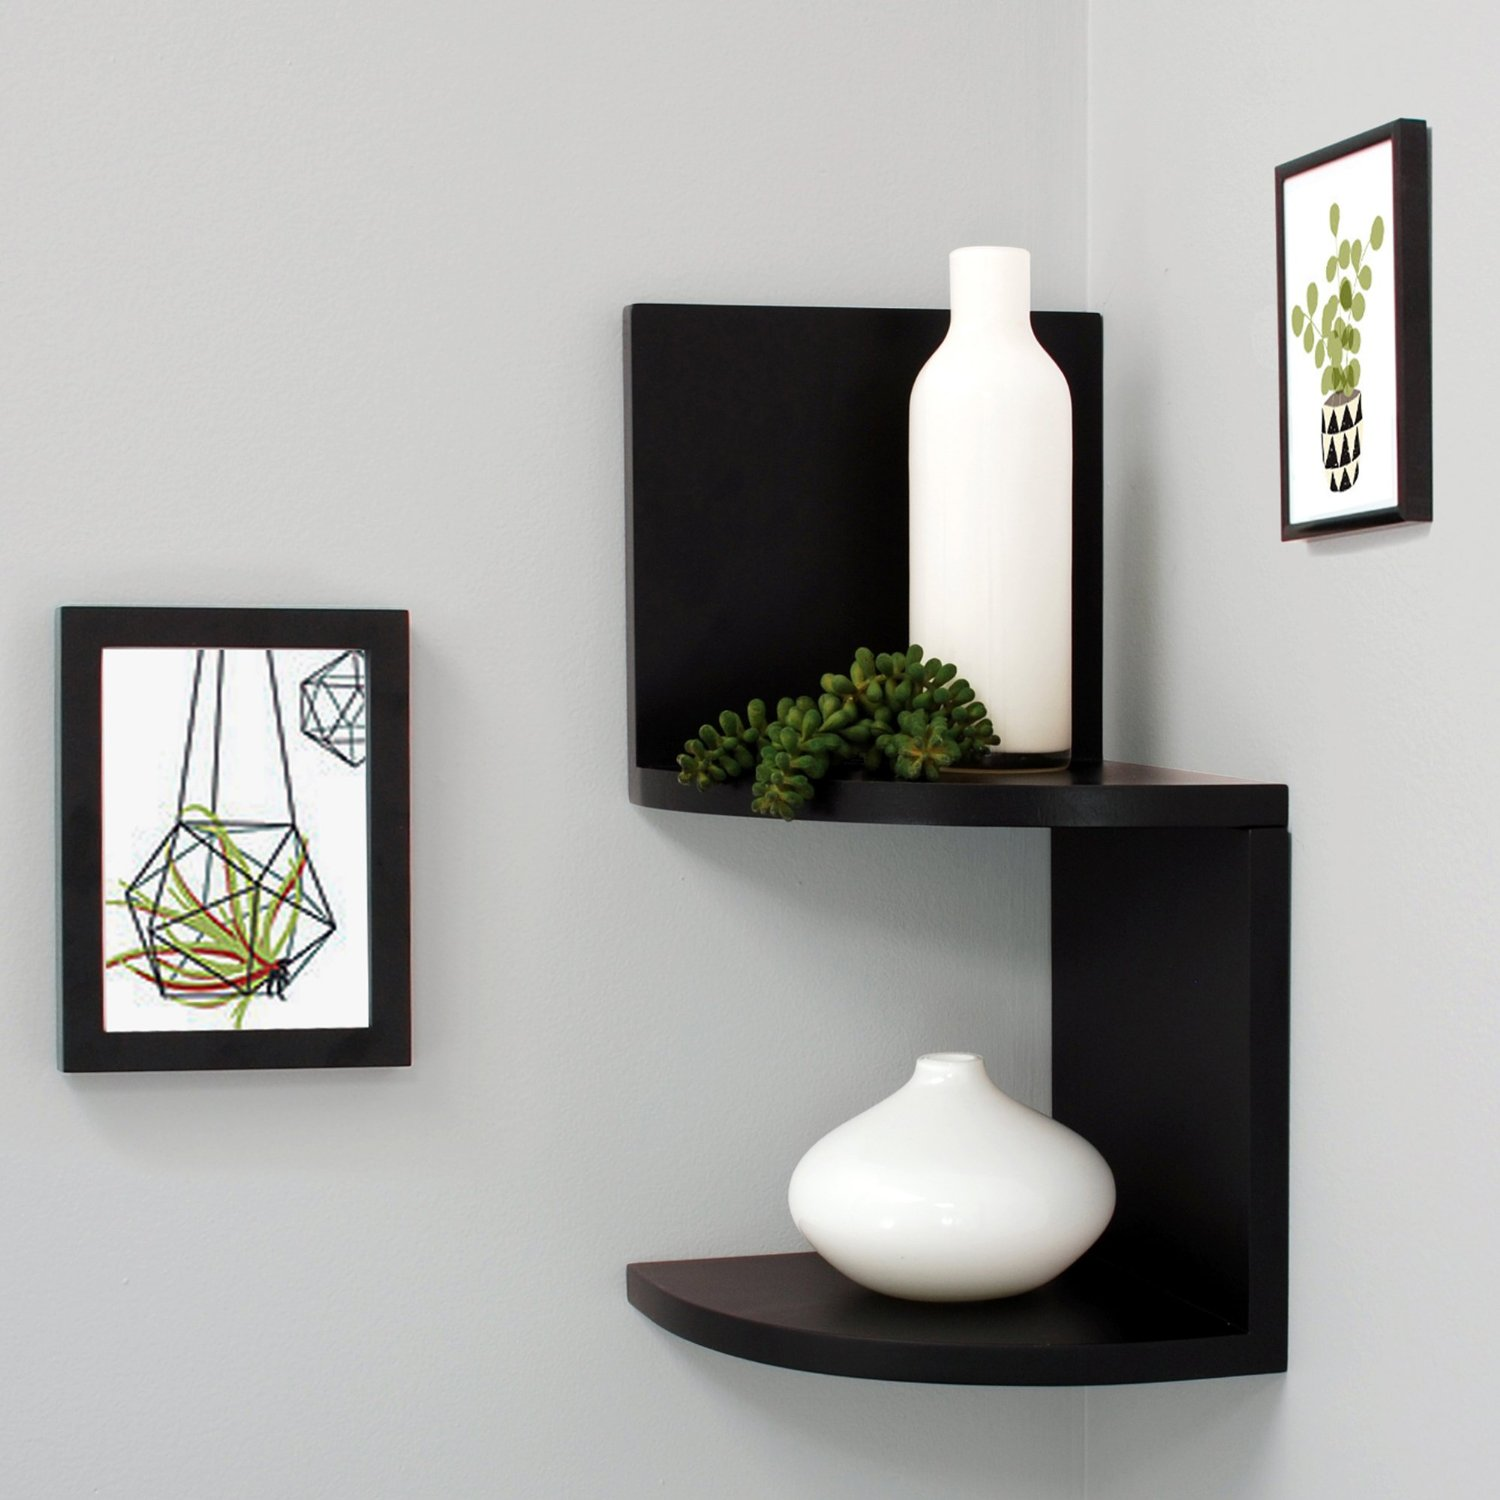 Top 16 Black Floating Wall Shelves Of 2016 2017 Review